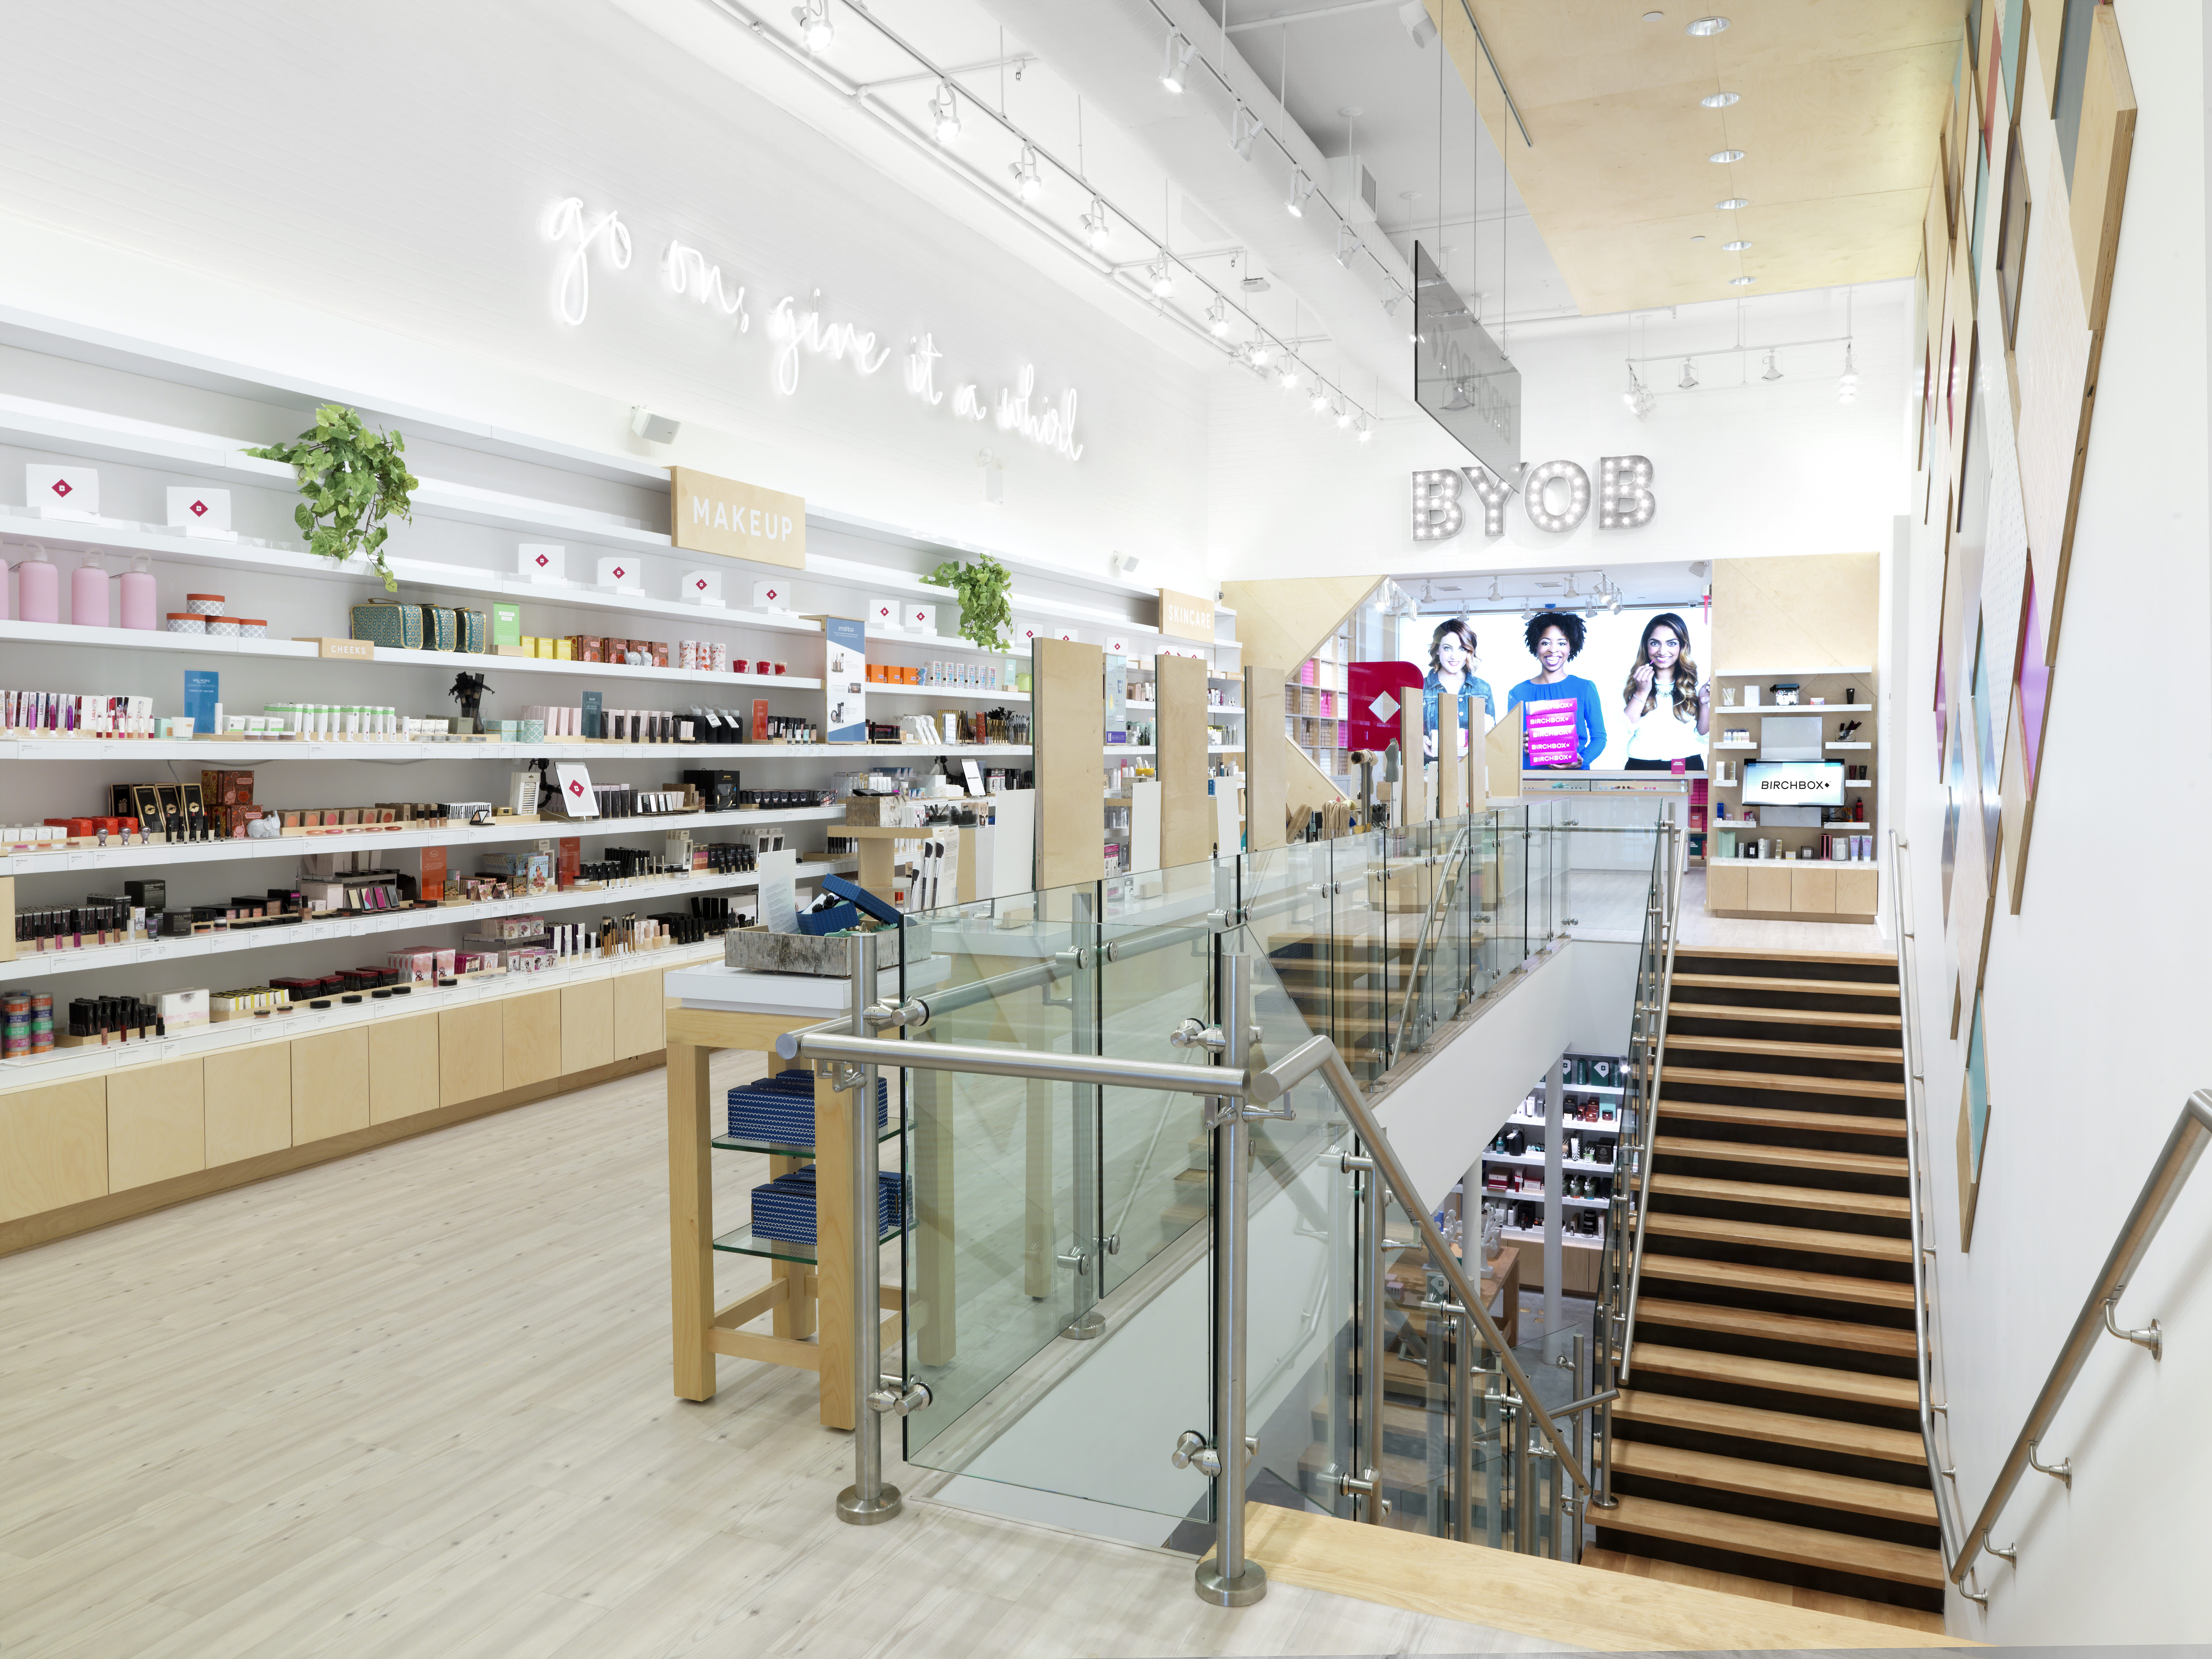 Birchbox Unboxes First Brick And Mortar Store